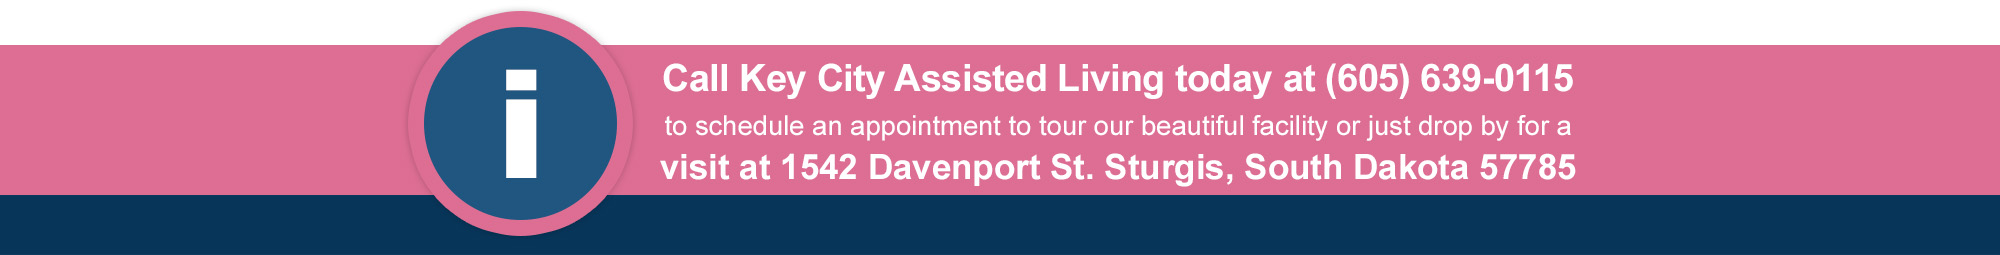 key city assisted living address visit 1542 Davenport Street Sturgis South Dakota zip 57785 phone 888-548-0049